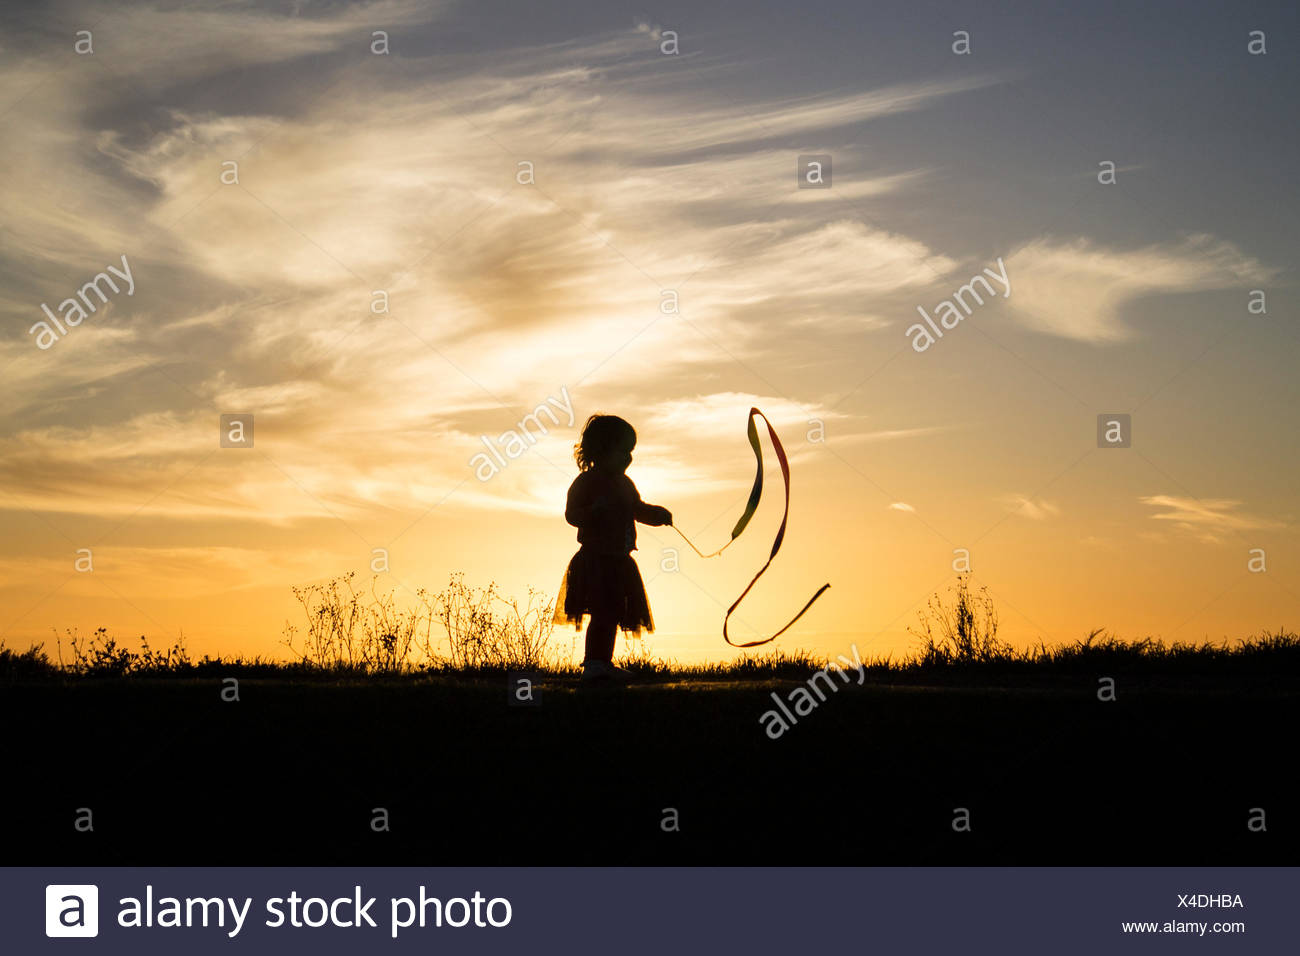 Silhouette of a girl playing with a ribbon - Stock Image